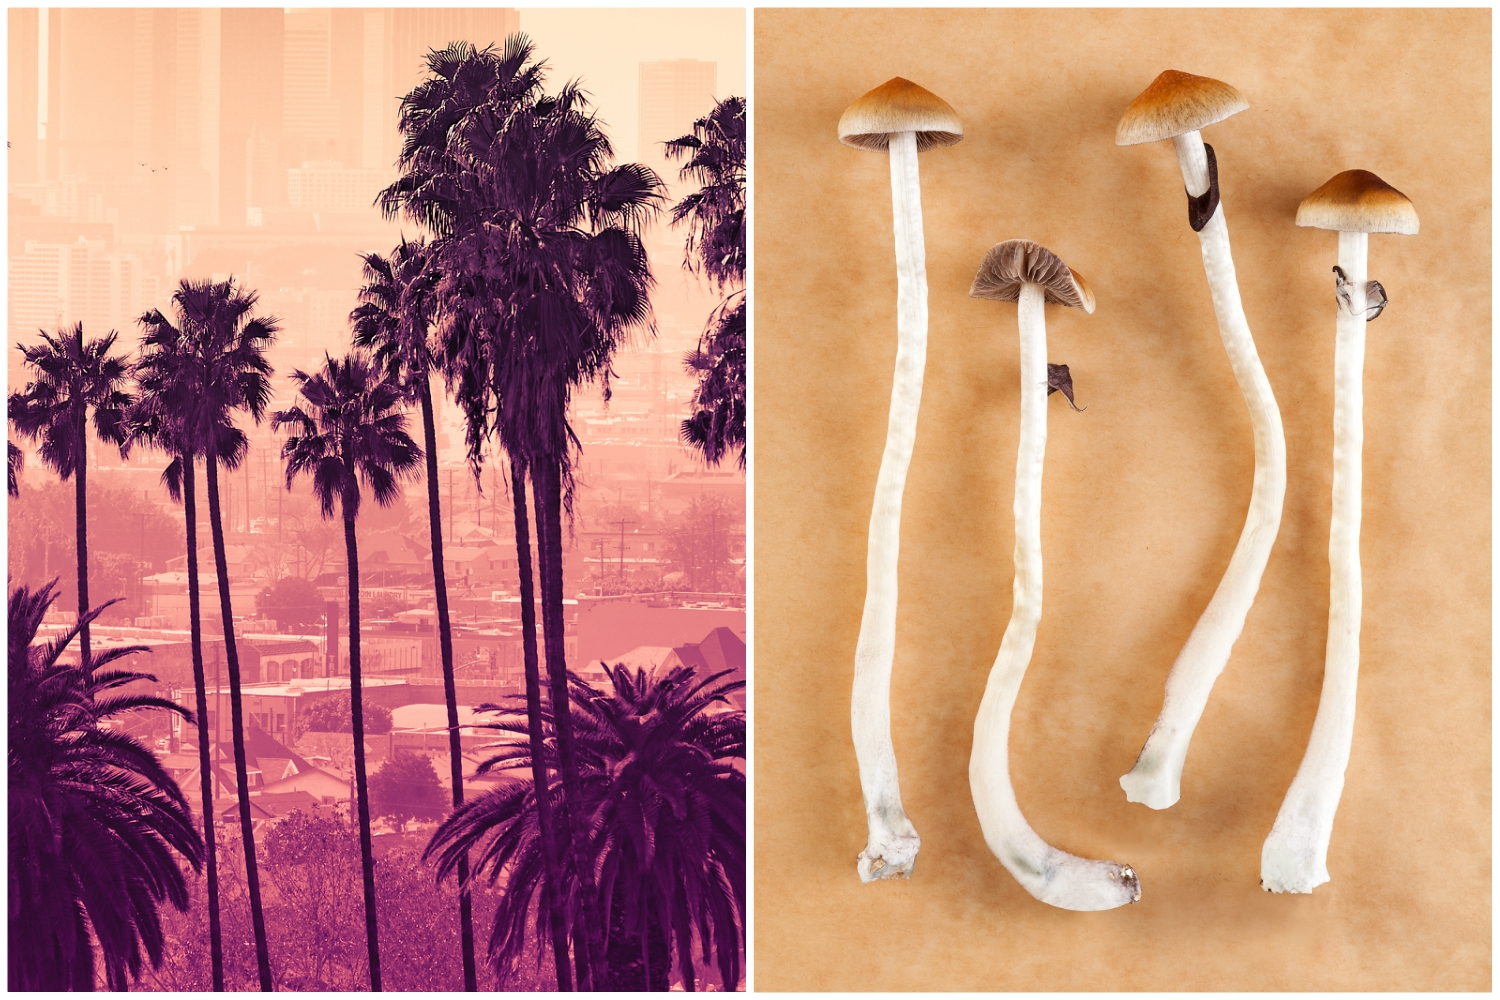 Could California Become the First State to Decriminalize Magic Mushrooms?